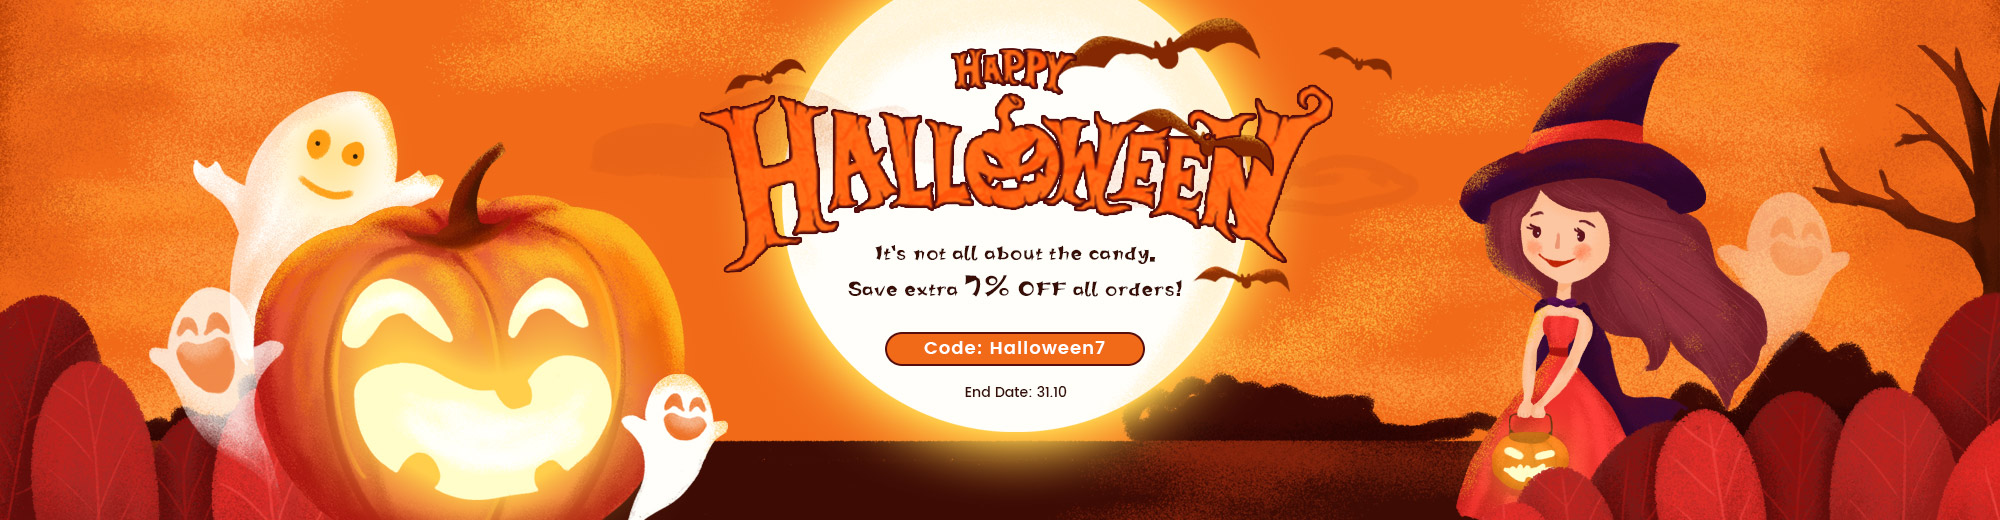 Happy Halloween! It's not all about the candy. Save extra 7% OFF all orders!